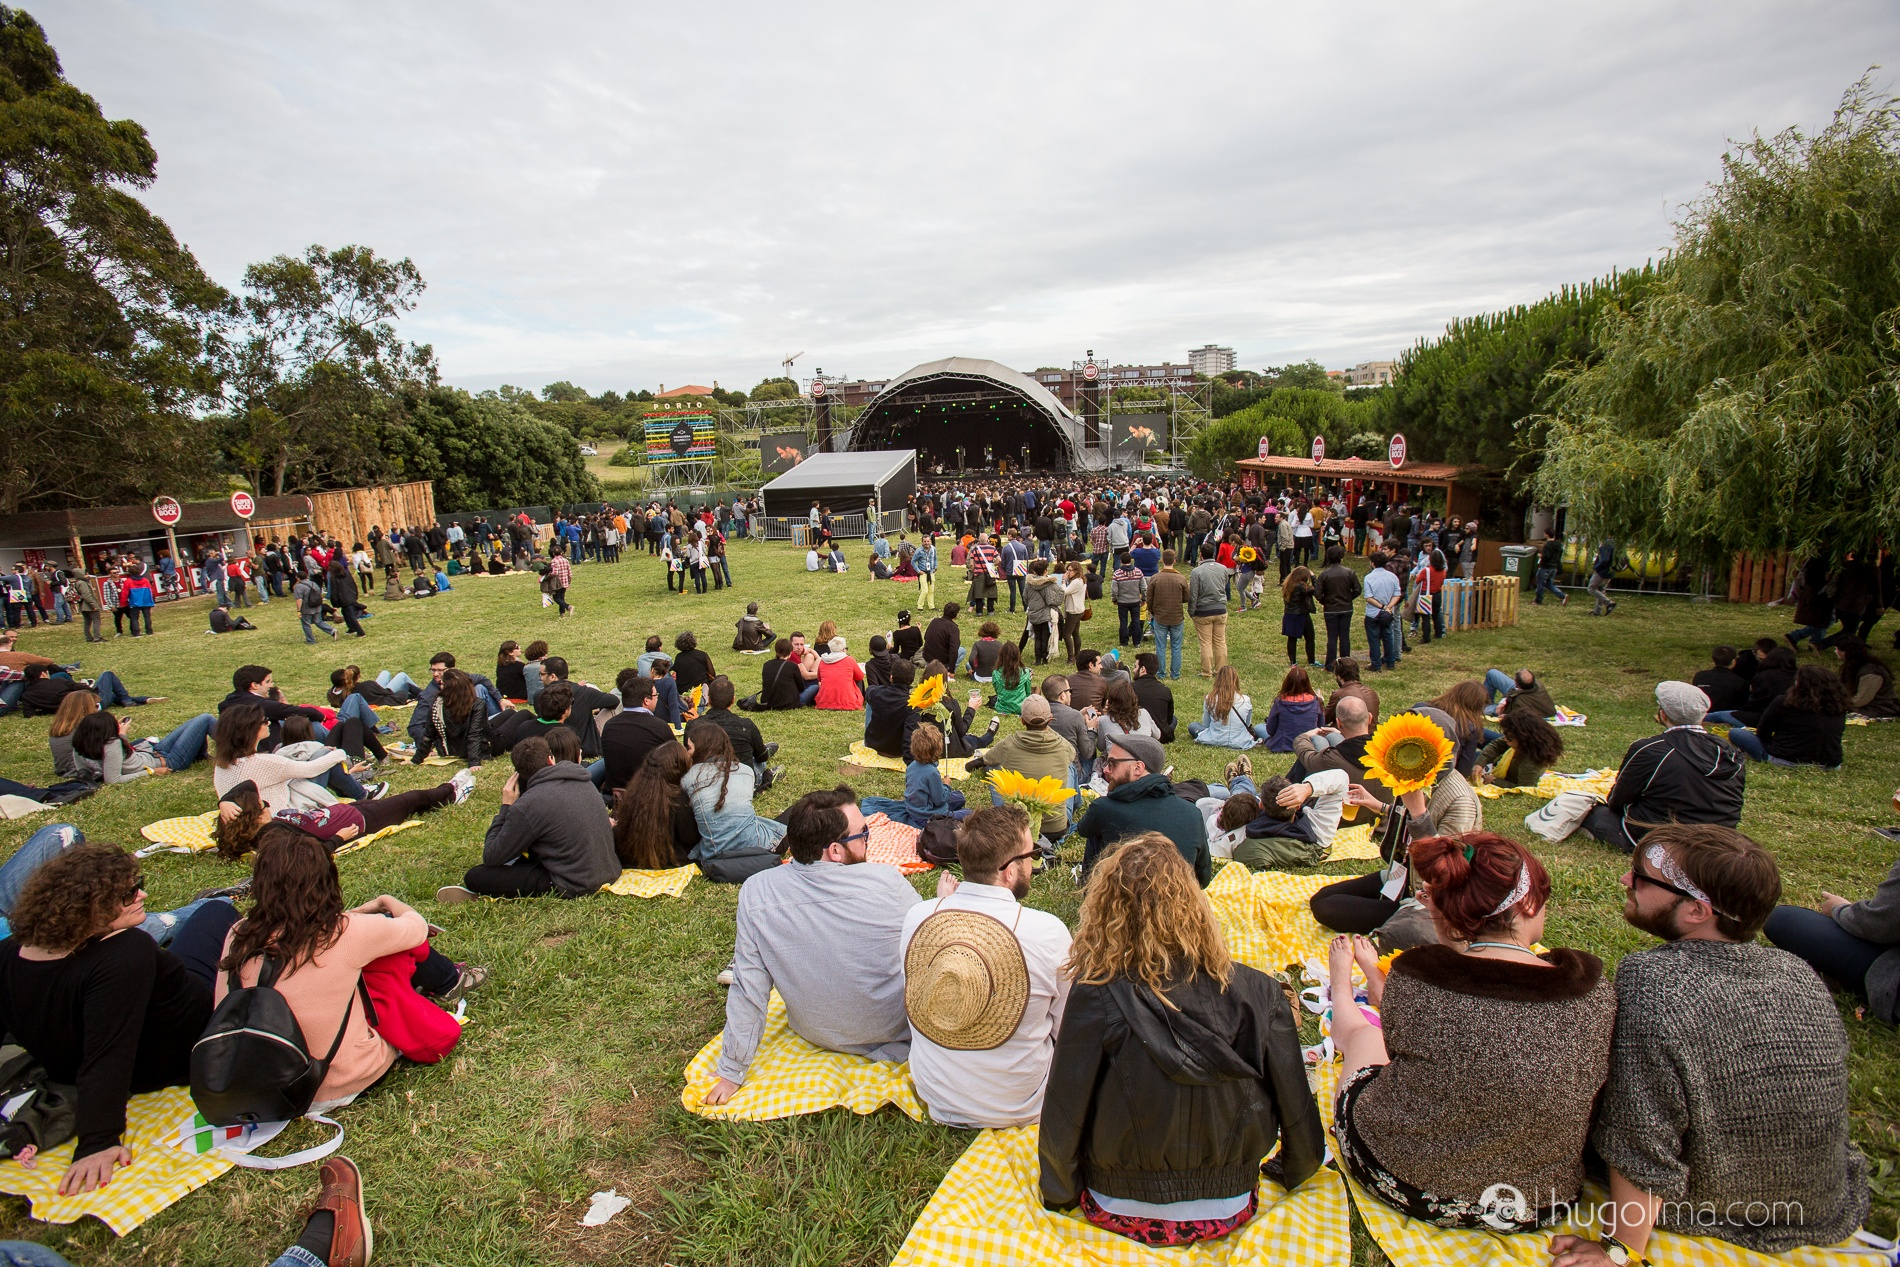 """Waiting for a concert to start at """"Parque da Cidade"""", as the locals call Oporto's largest green park."""